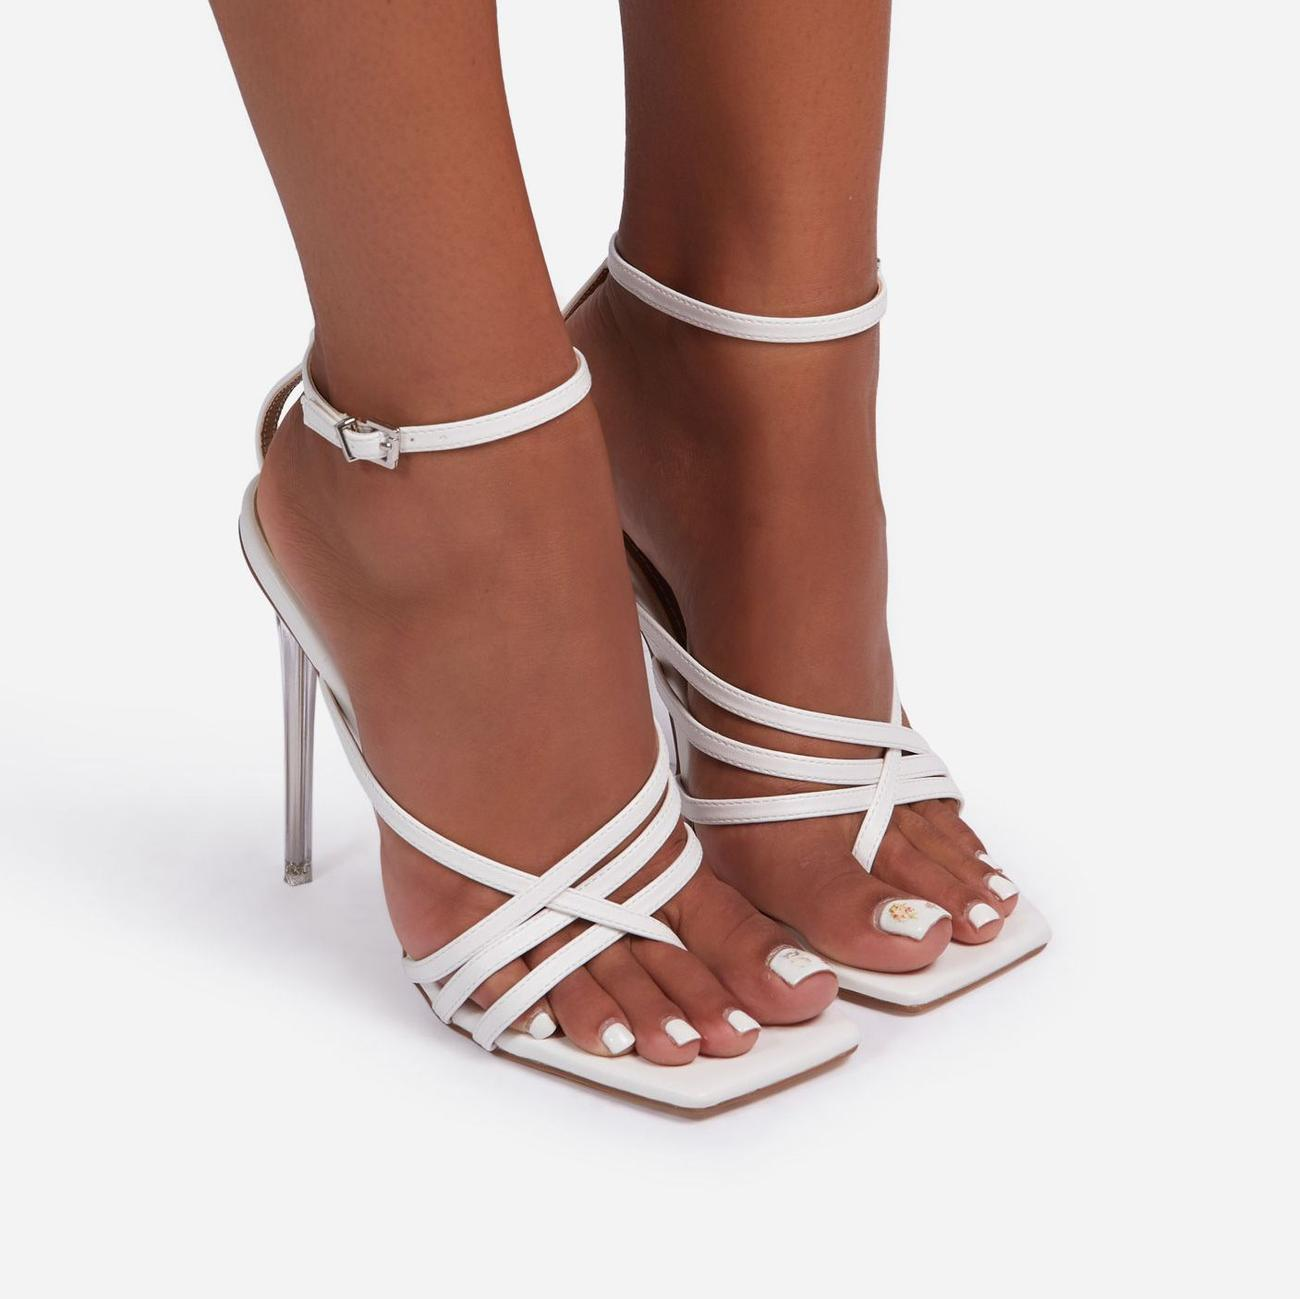 Rayon Strappy Square Toe Clear Perspex Heel In White Faux Leather Image 3